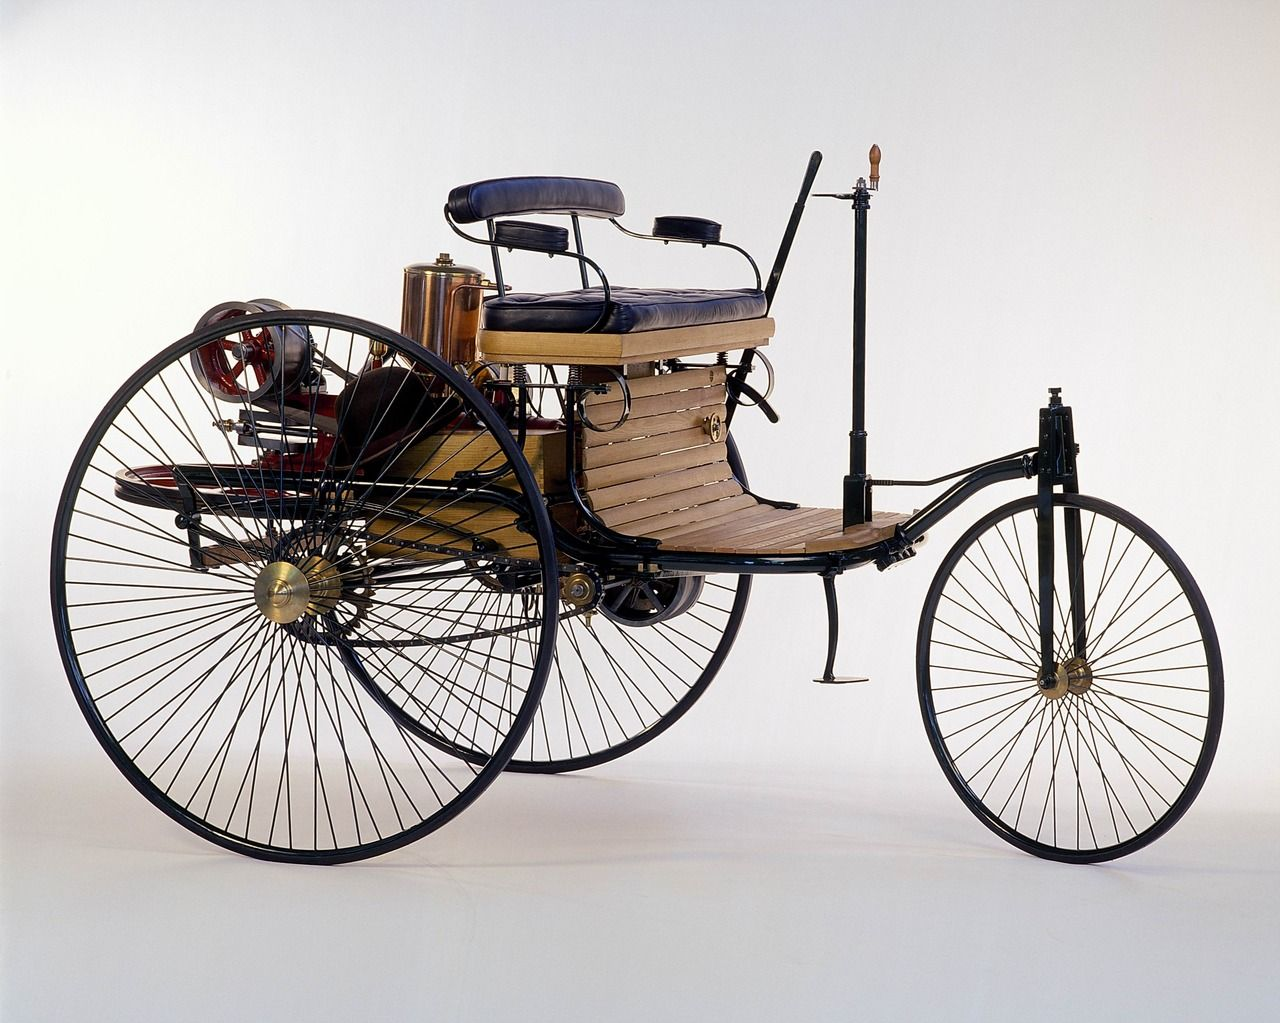 Benz Patent Motor Car, the first automobile (1885 – 1886) The first ...